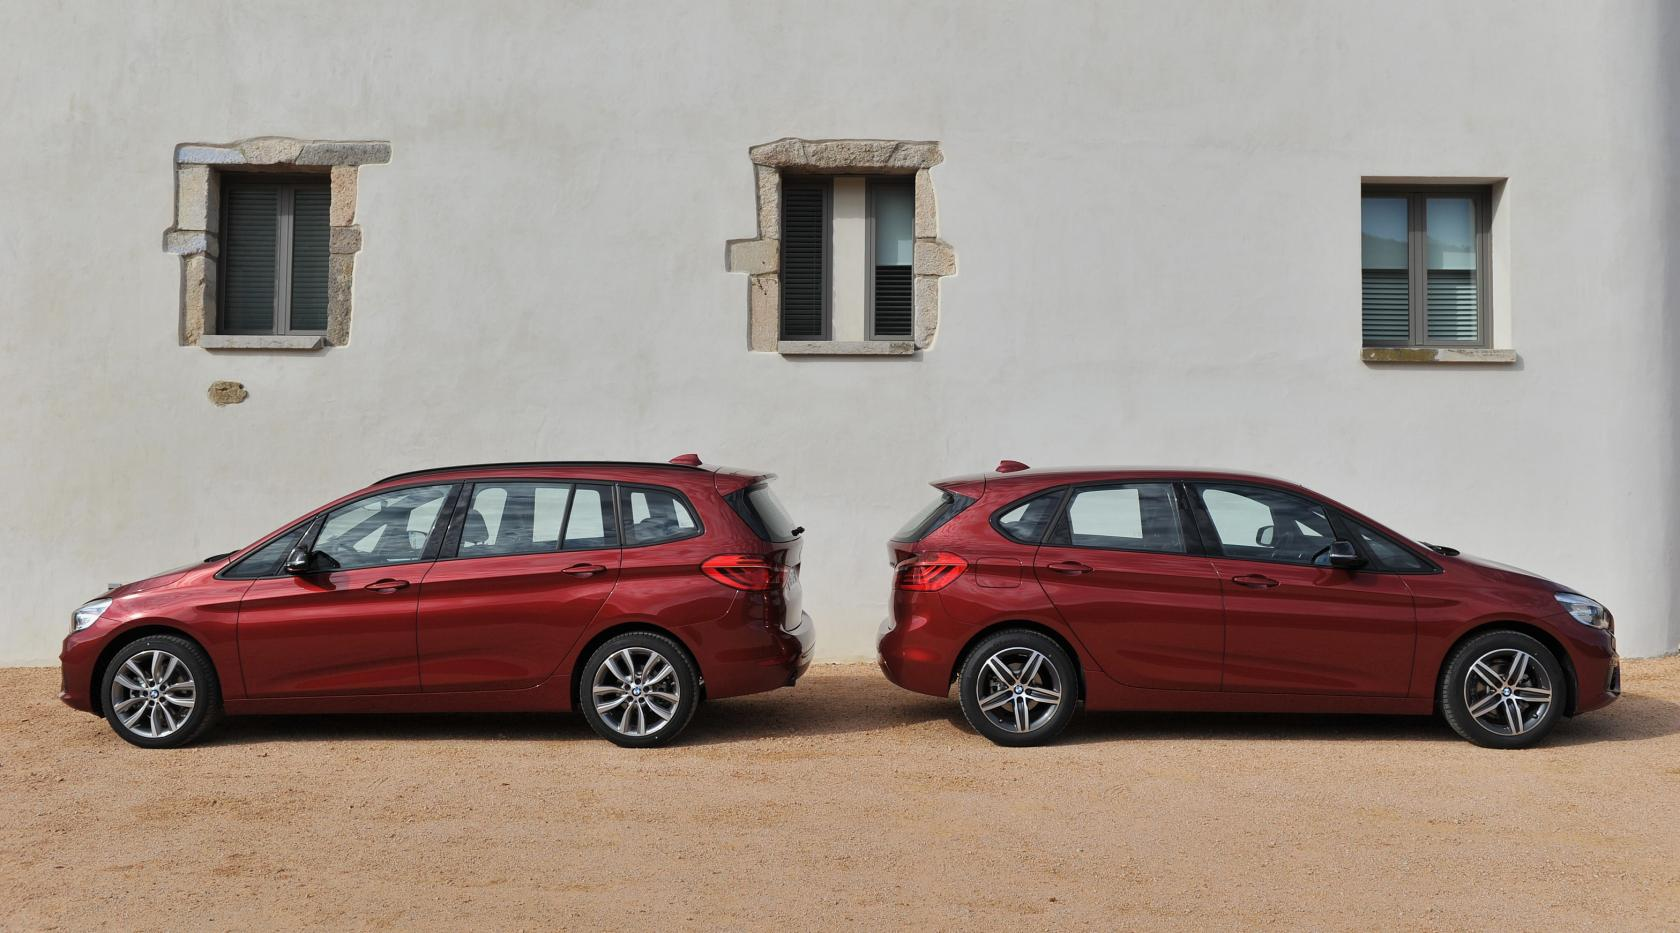 BMW-Active-Tourer-vs-Gran-Tourer-3.jpeg